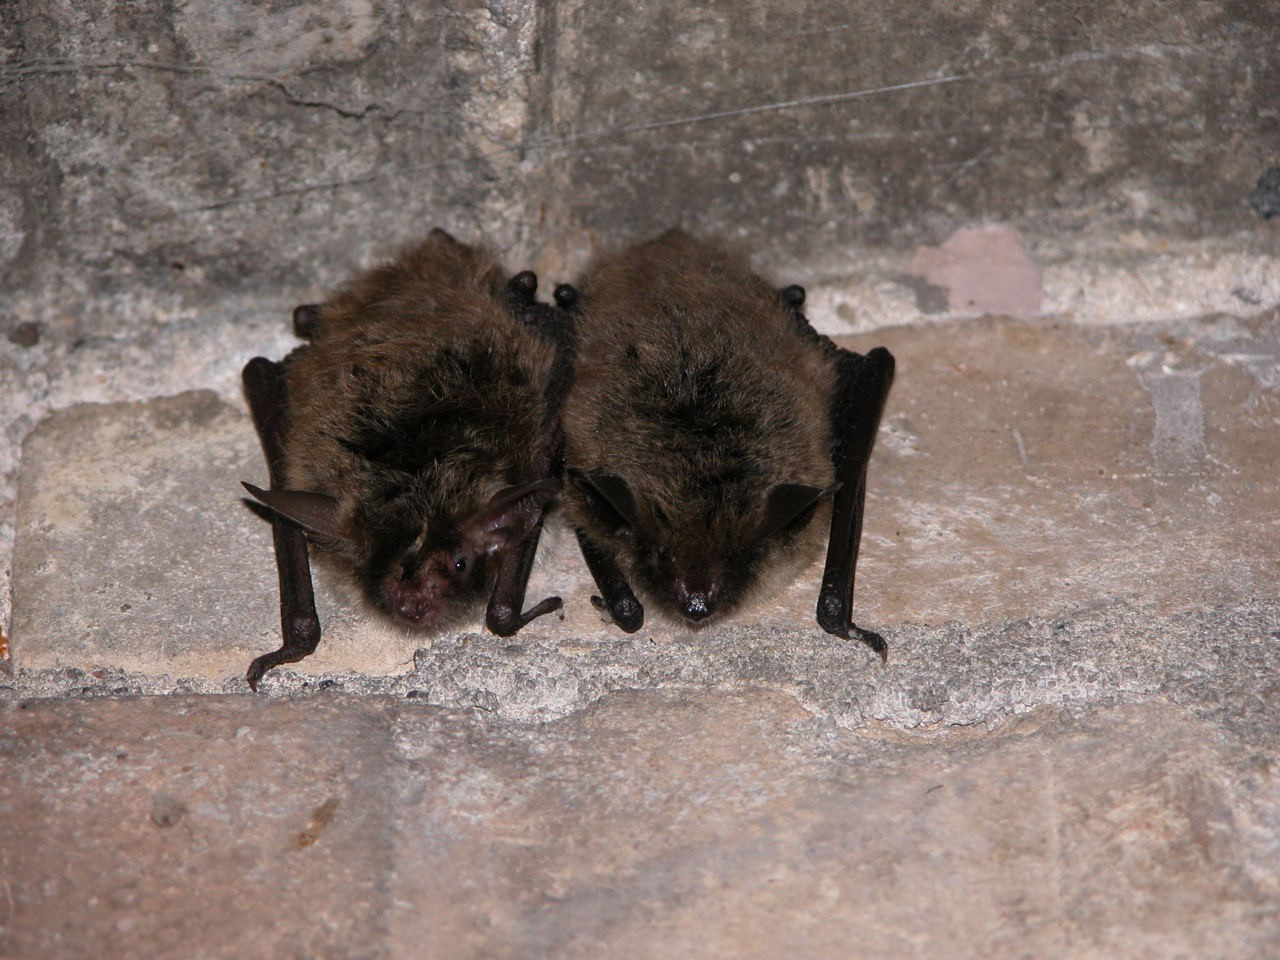 Bats with whitenose syndrome